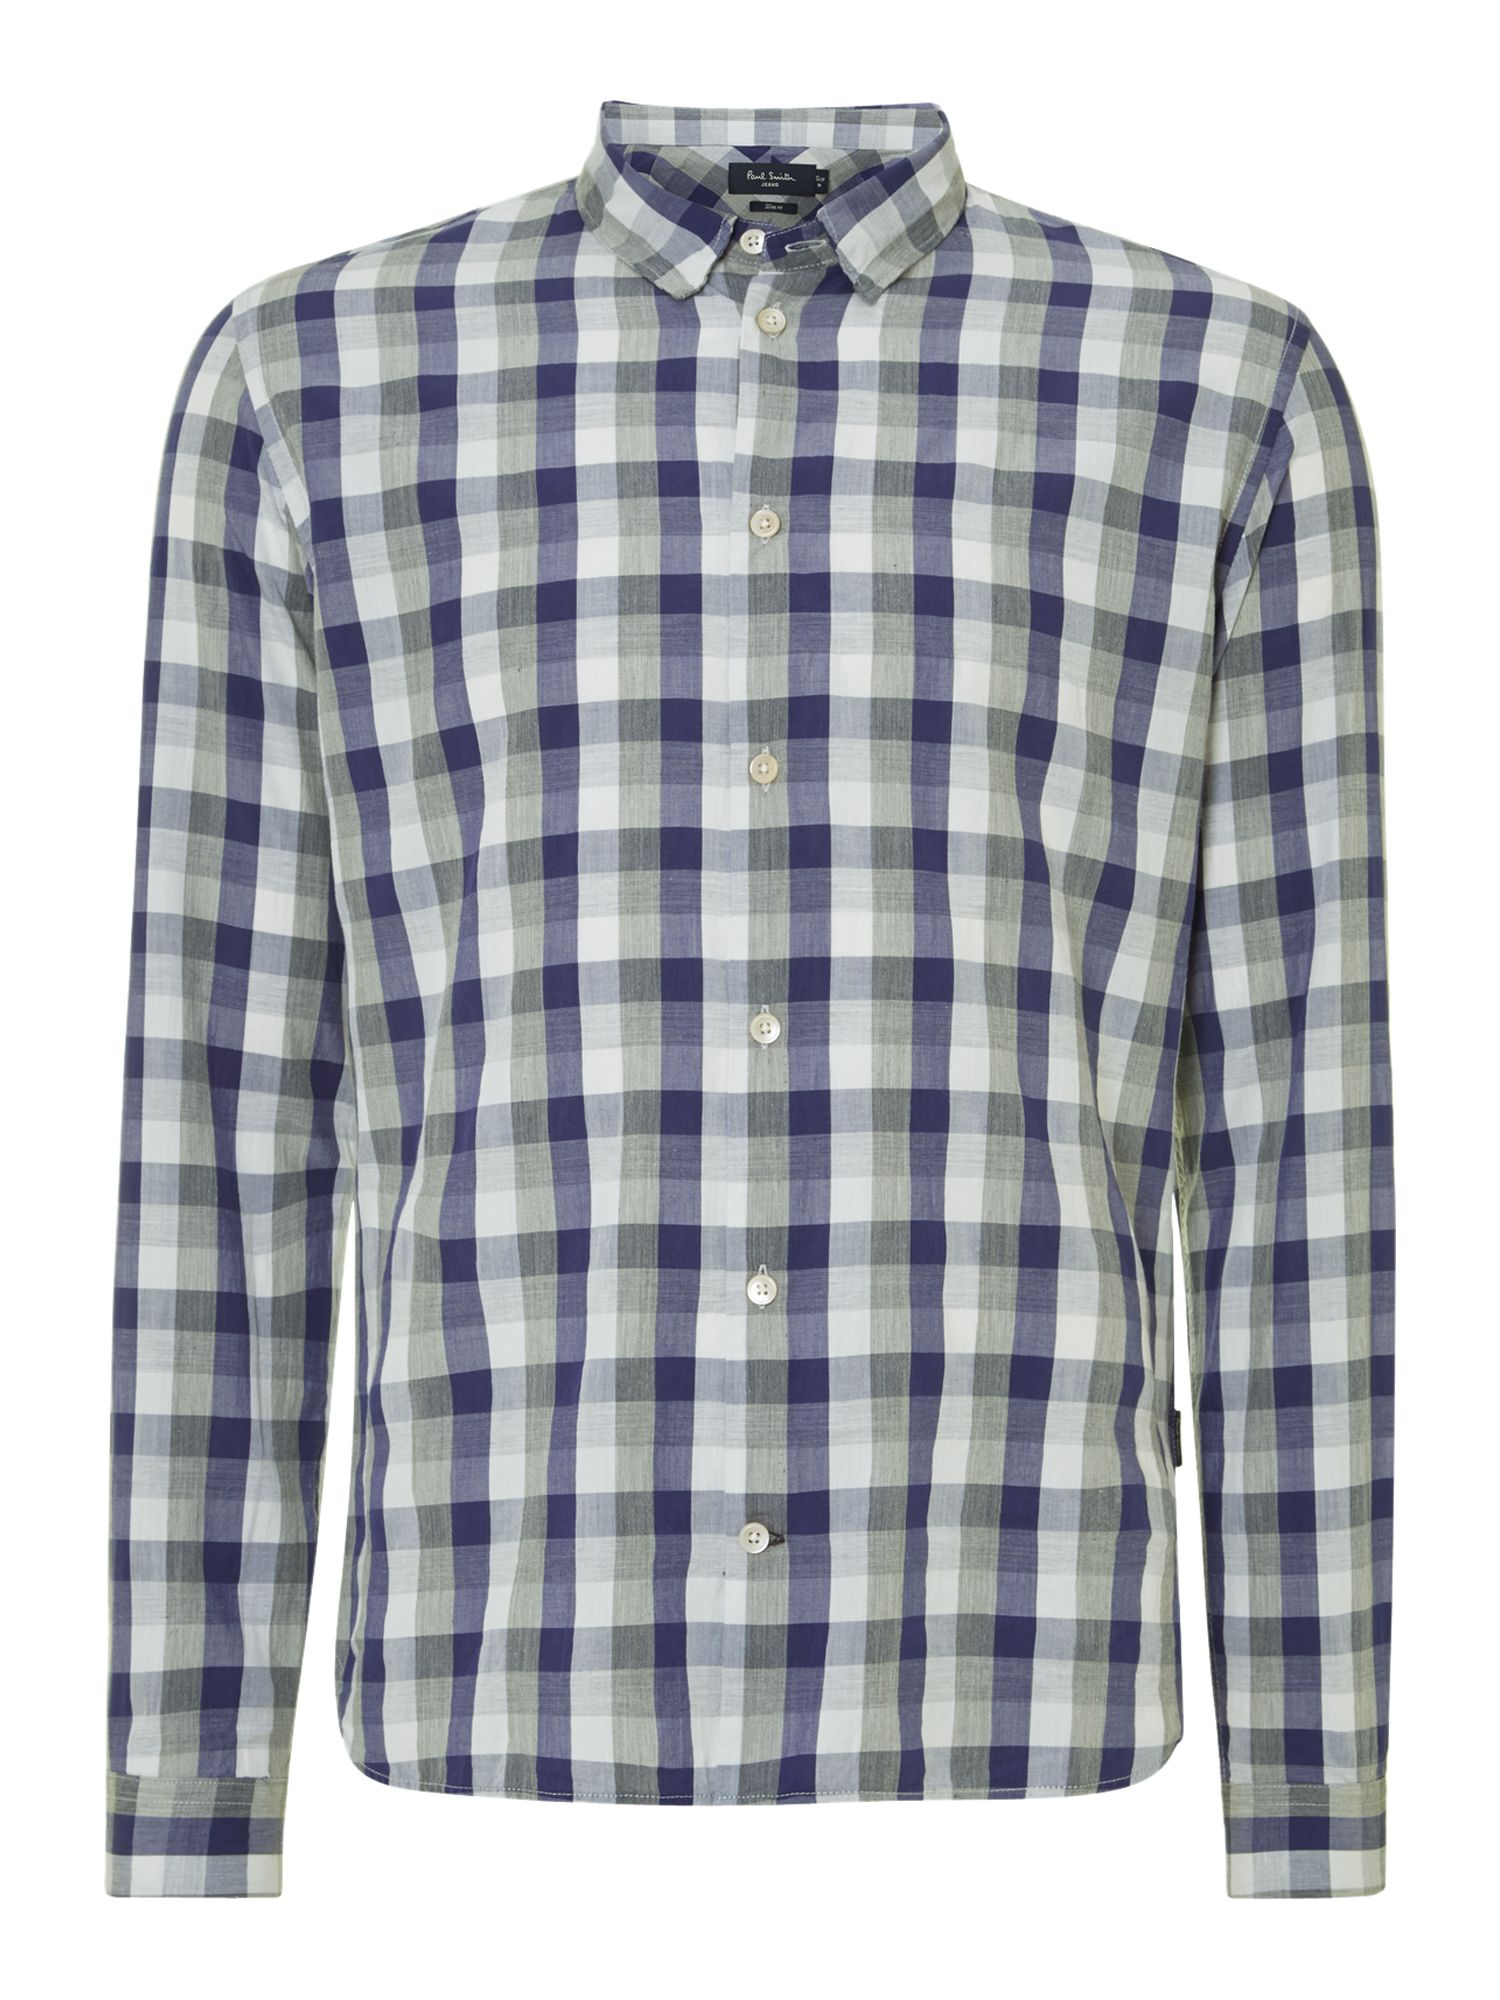 Long sleeve marl check shirt